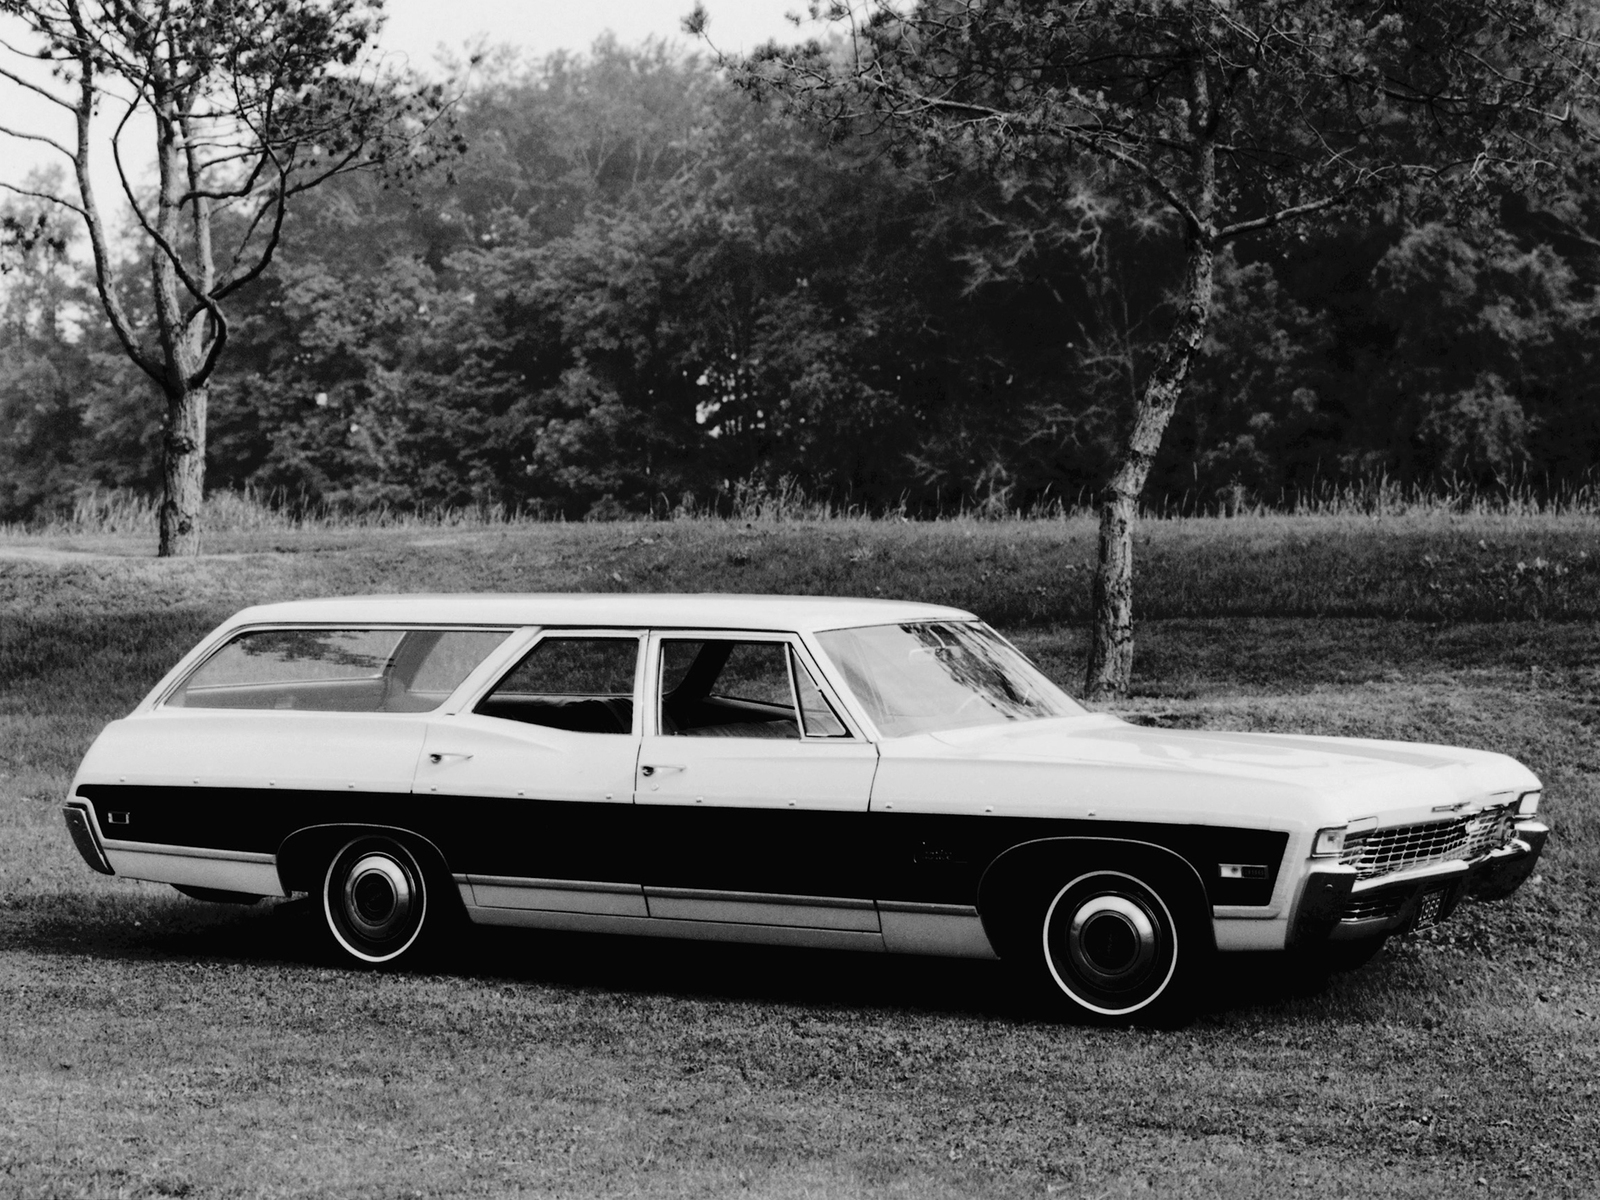 Primary image for 1968 Chevrolet Caprice Station Wagon 24 X 36 inch poster